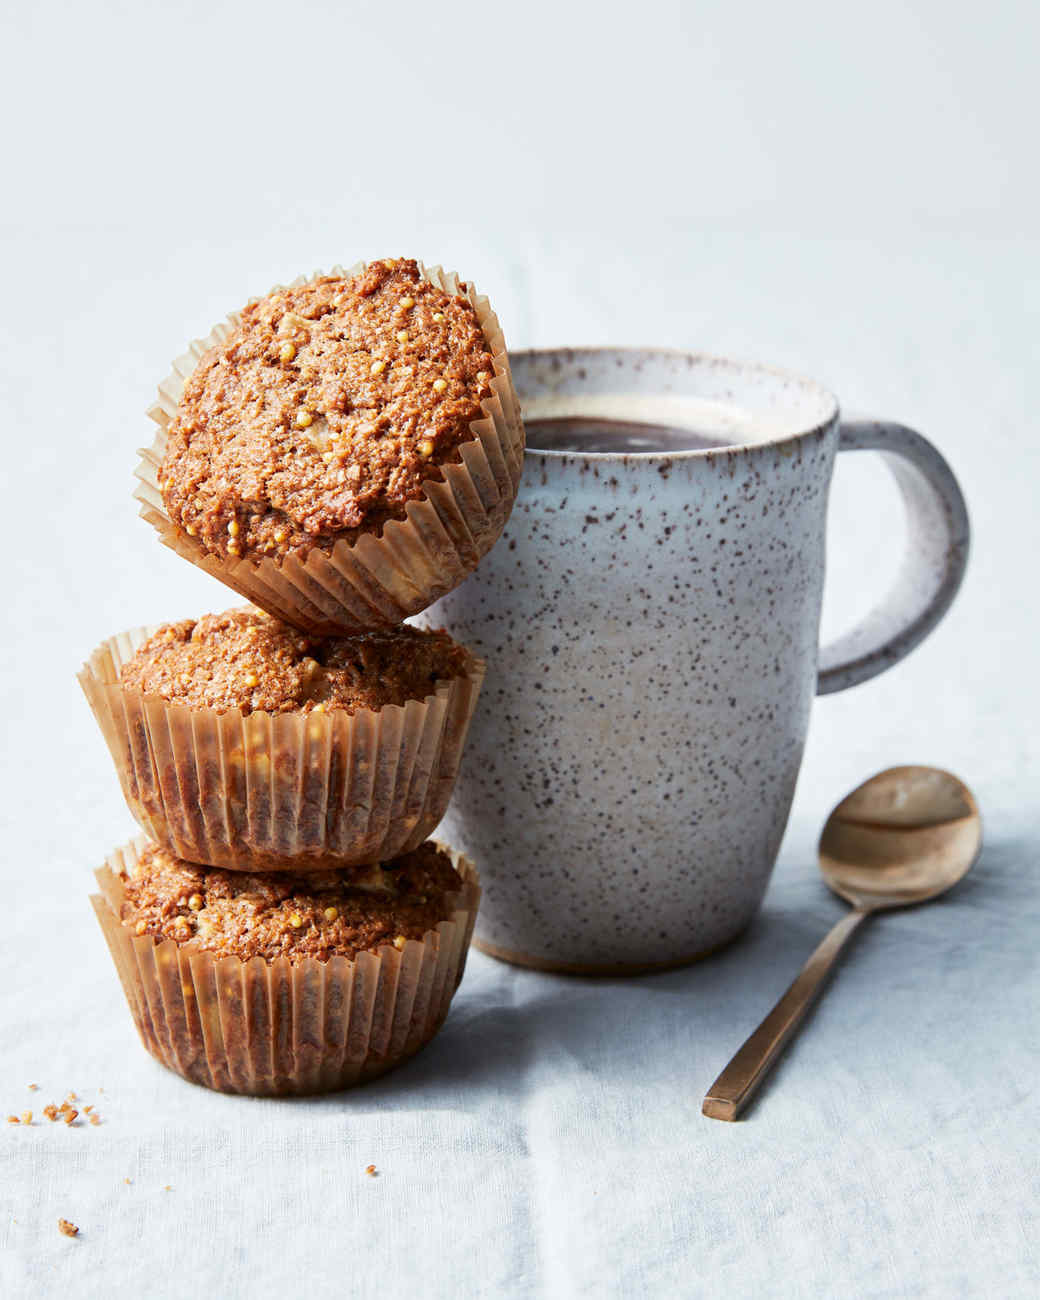 apple-bran-muffin-437-d113047-1.jpg